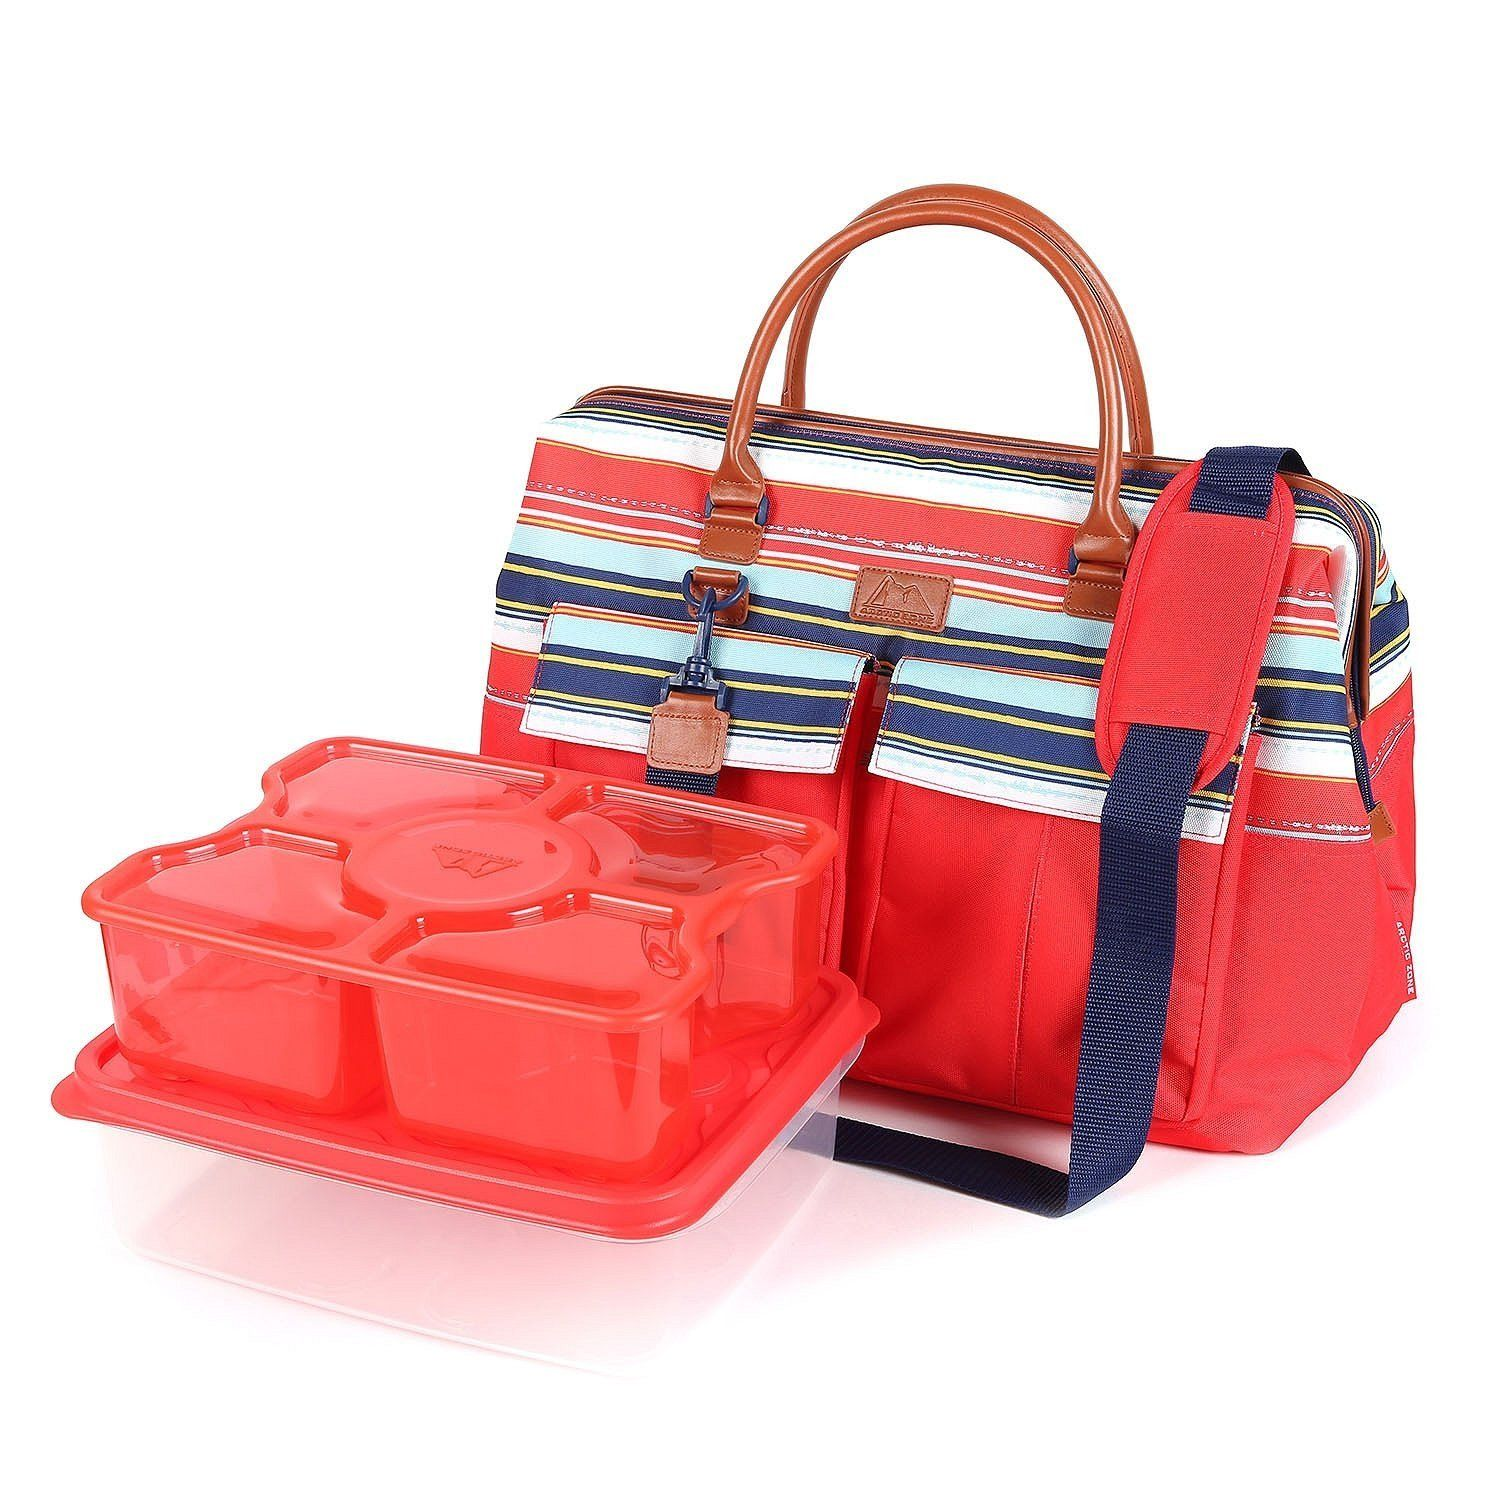 Arctic Zone 7 Piece Set Insulated Carrier W Interlockers Food Container Set Picnic Tote Food Container Set Storage Gift